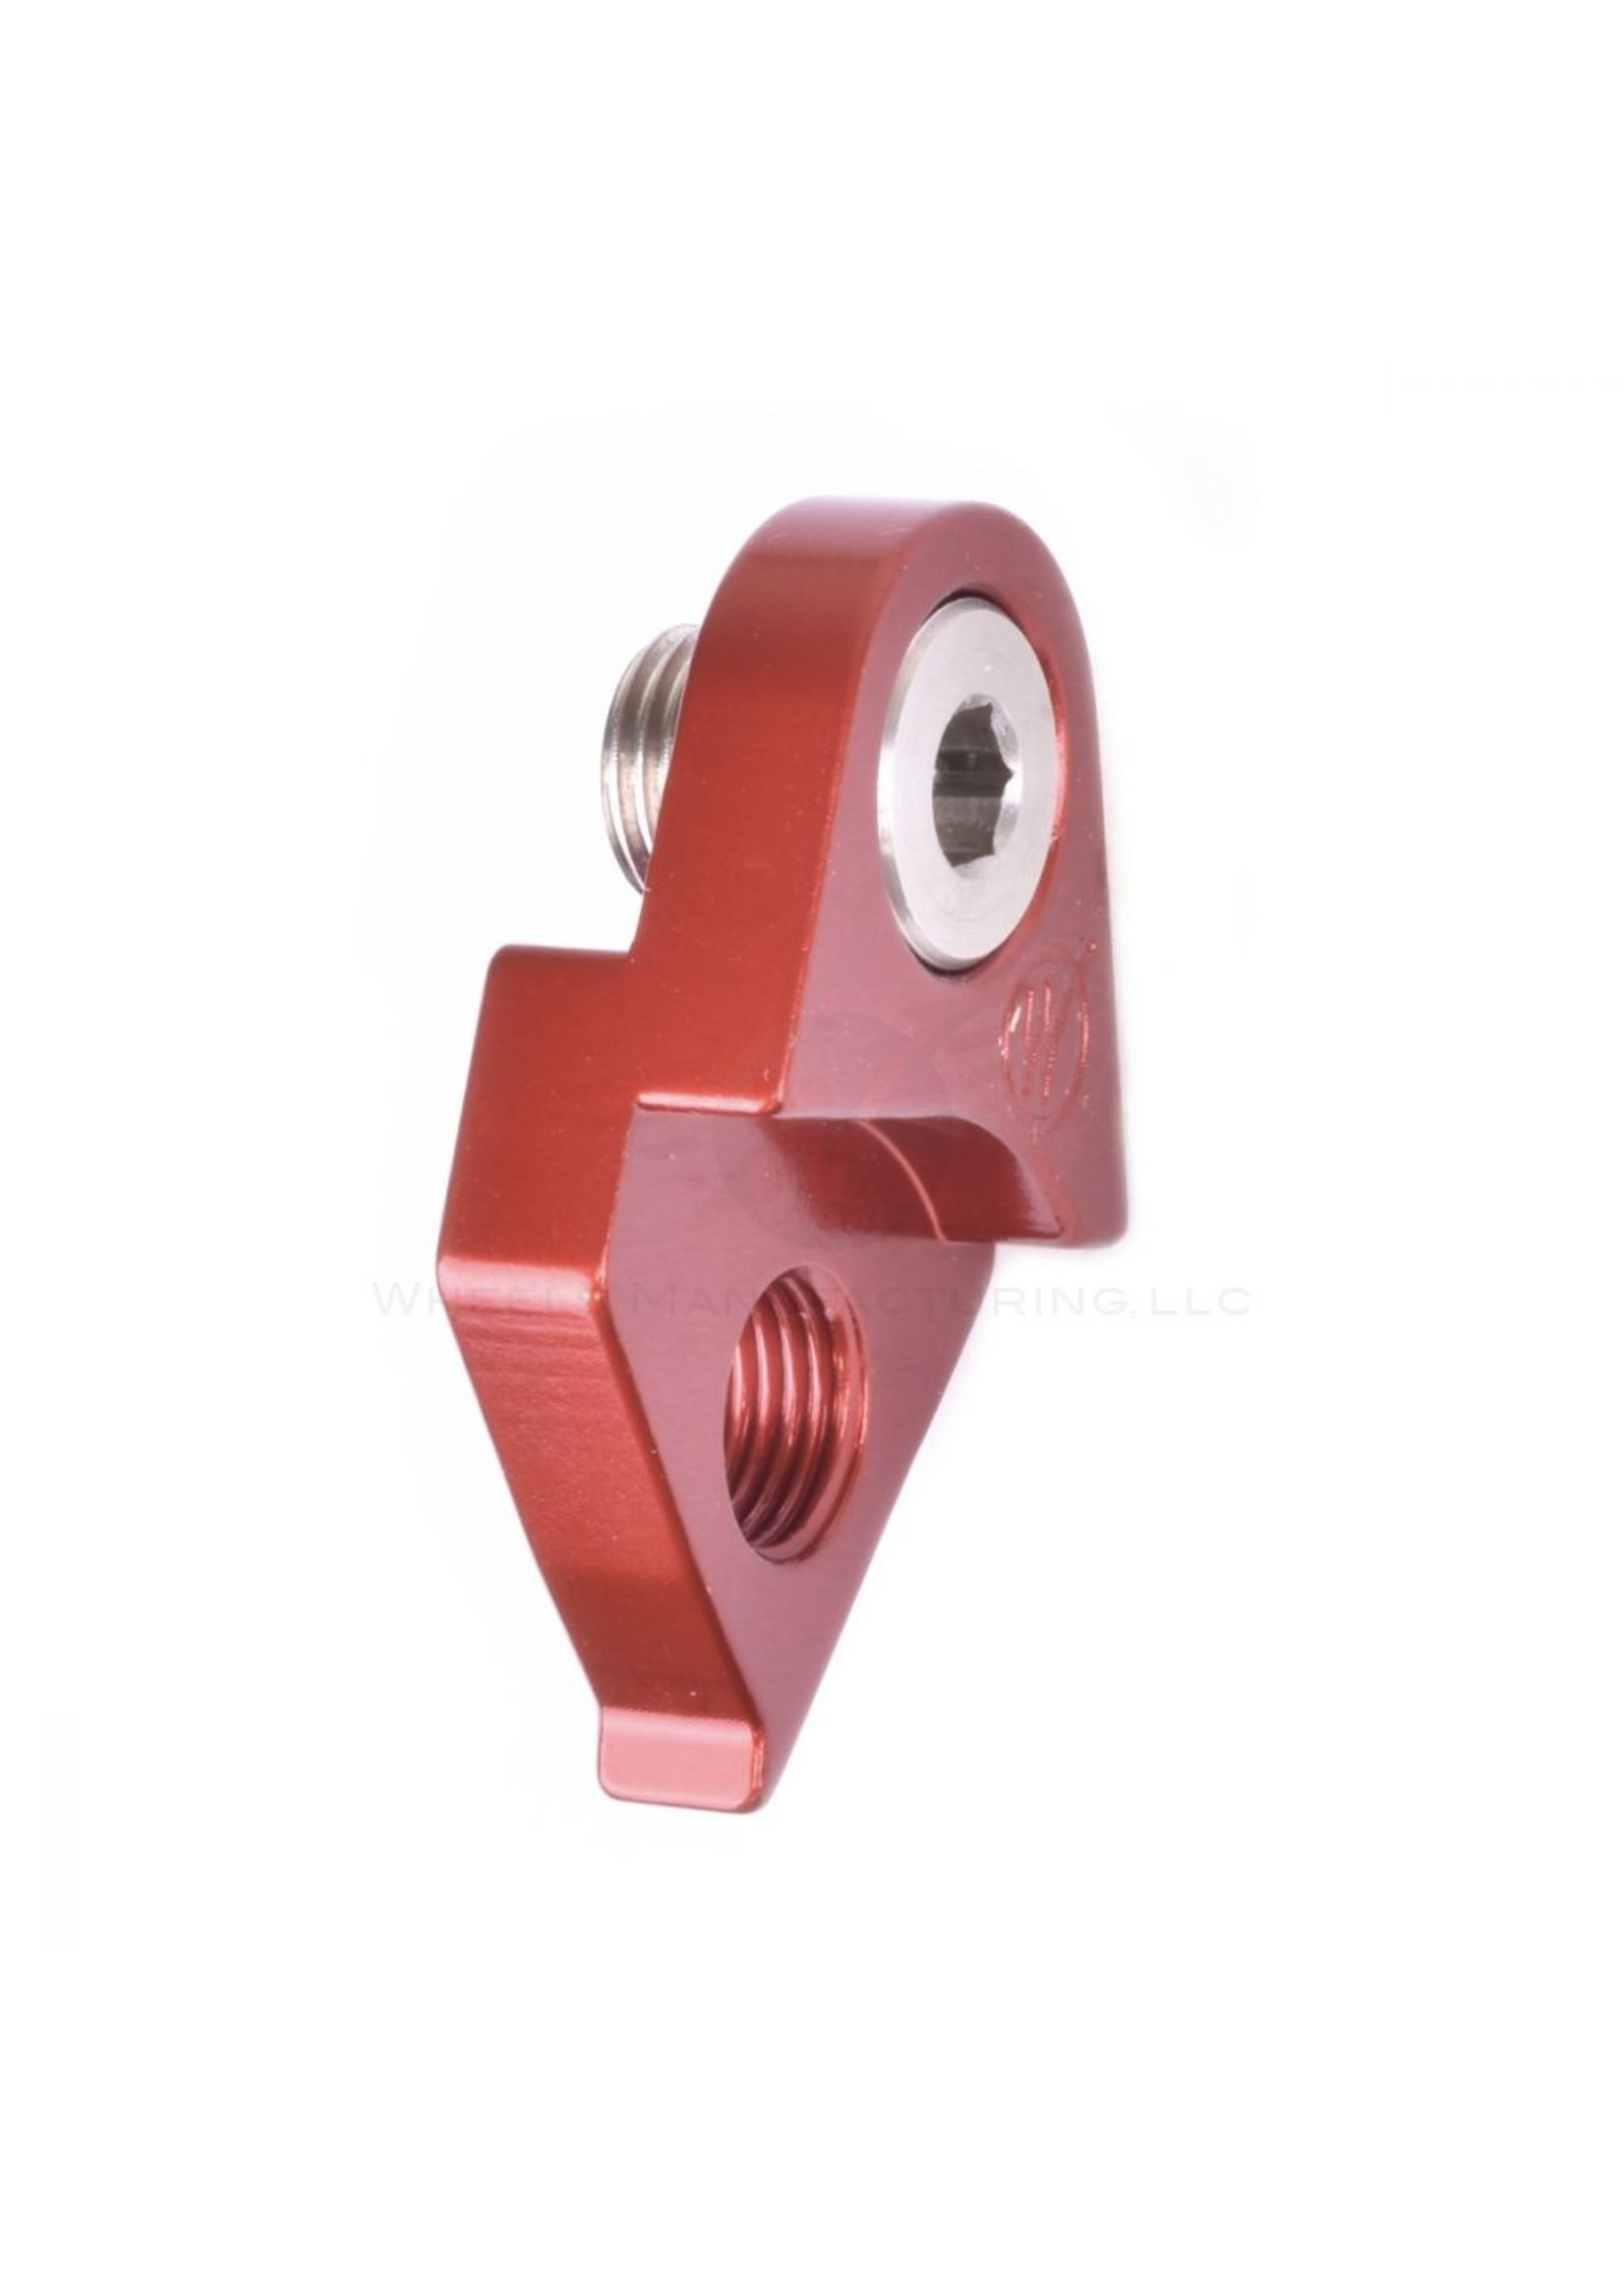 WHEELS MANUFACTURING WMFG EXTENDED HANGER 21MM EXTENSION